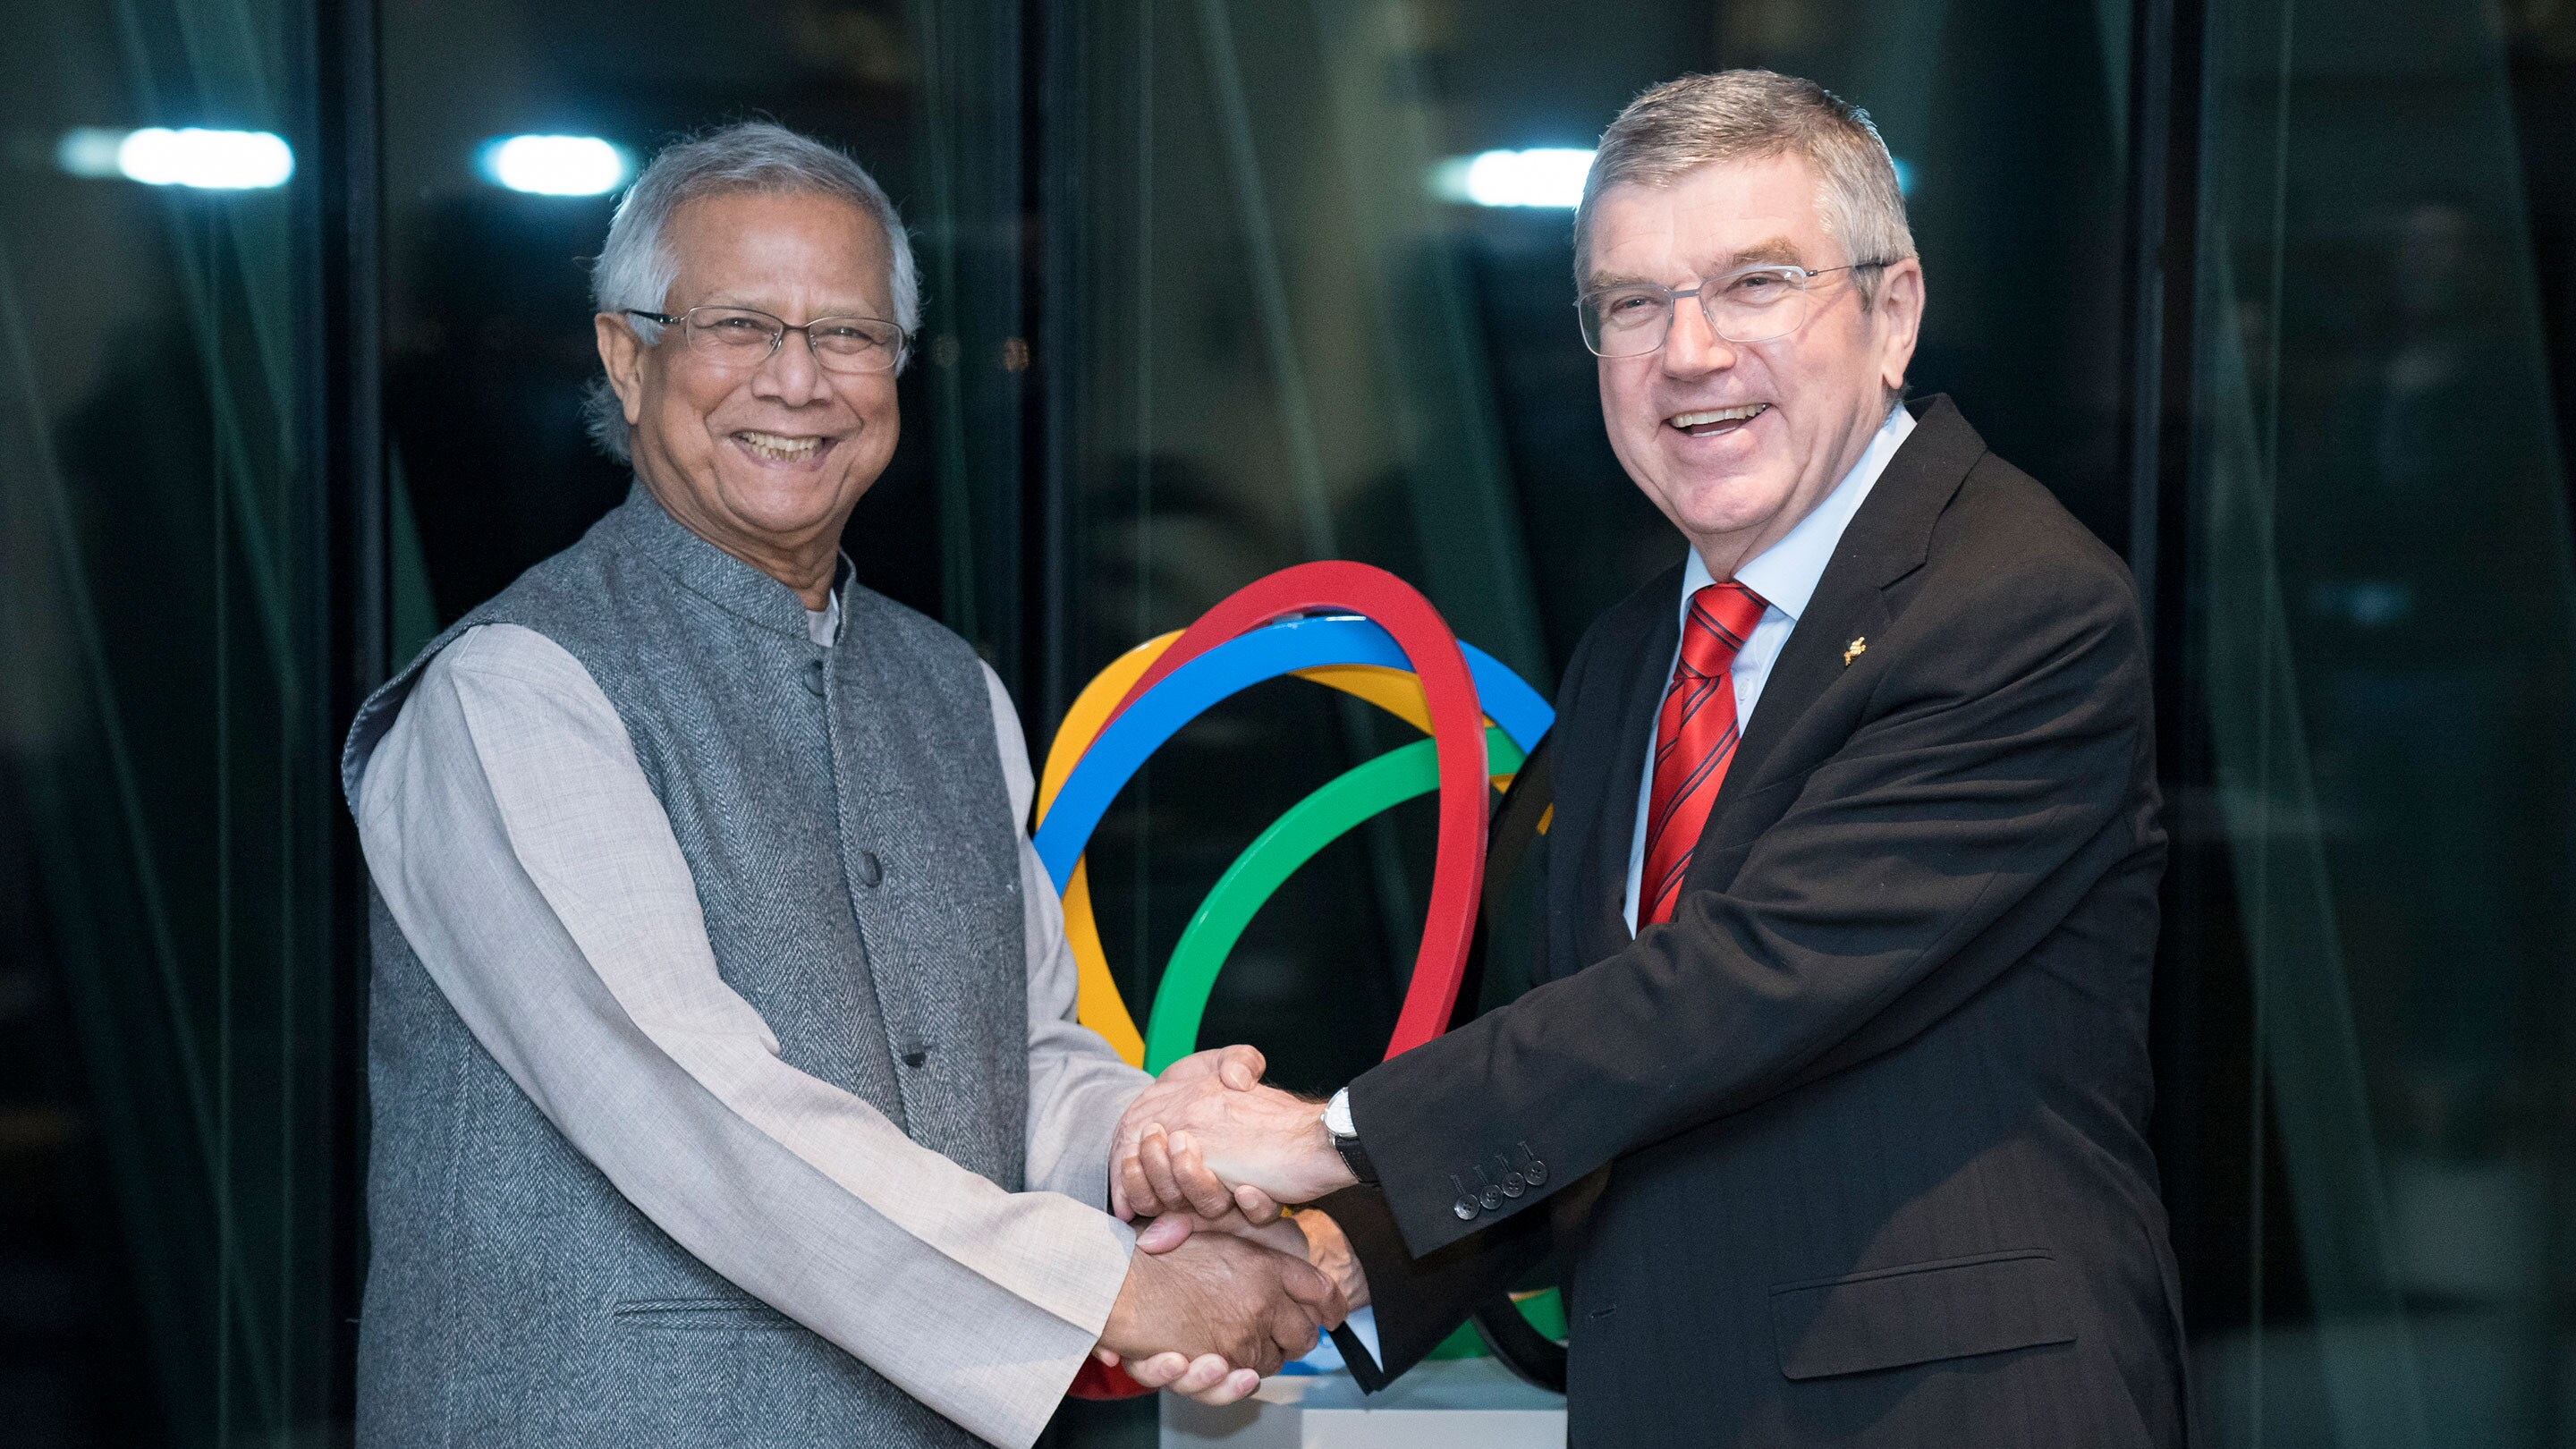 IOC President Thomas Bach during a meeting with Professor Muhammad Yunus at Olympic House in Lausanne in 2020.